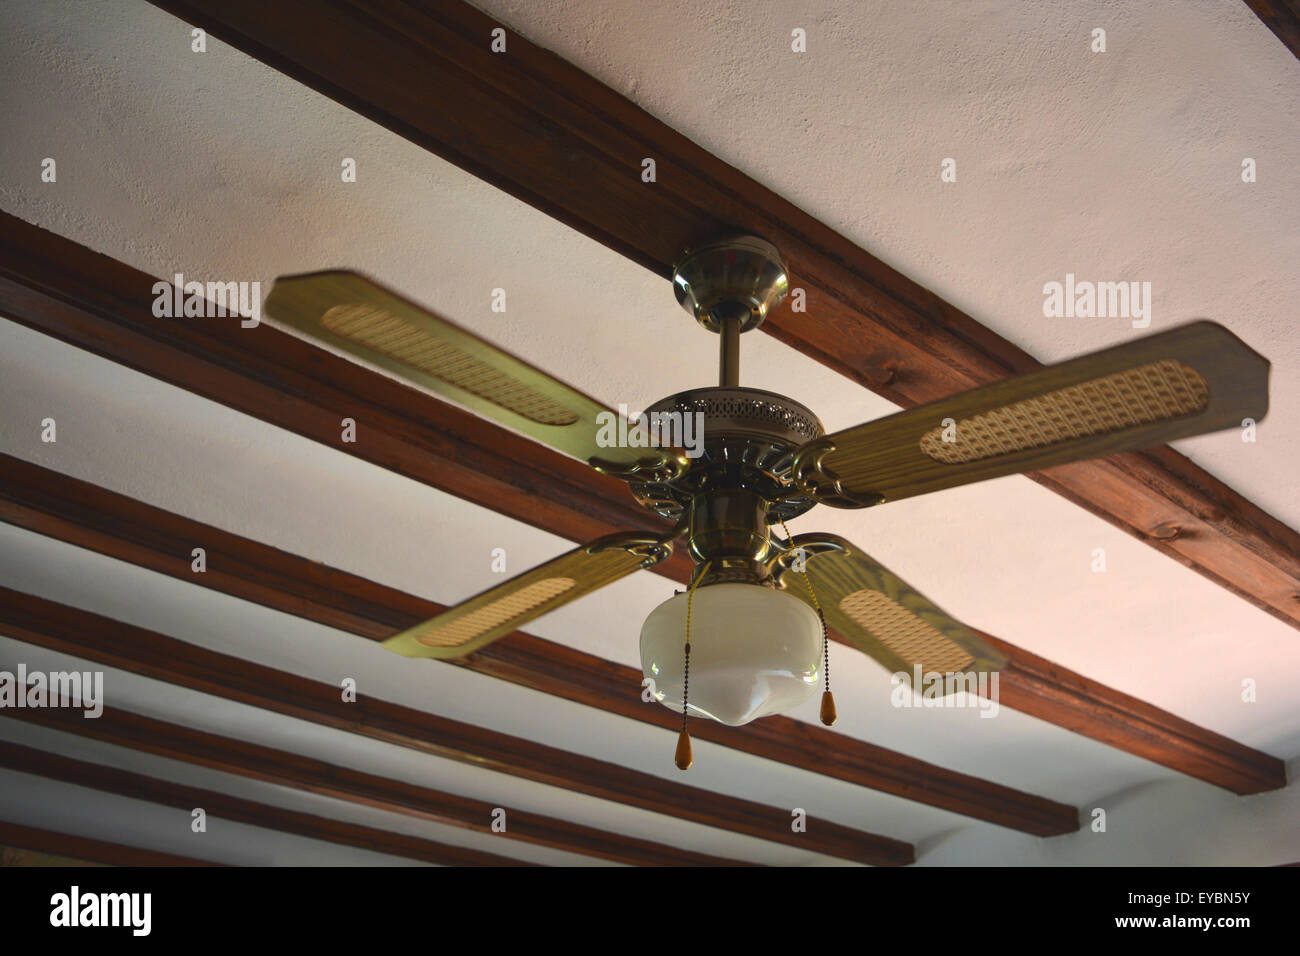 Ceiling Fan With A Light Fitting Spain